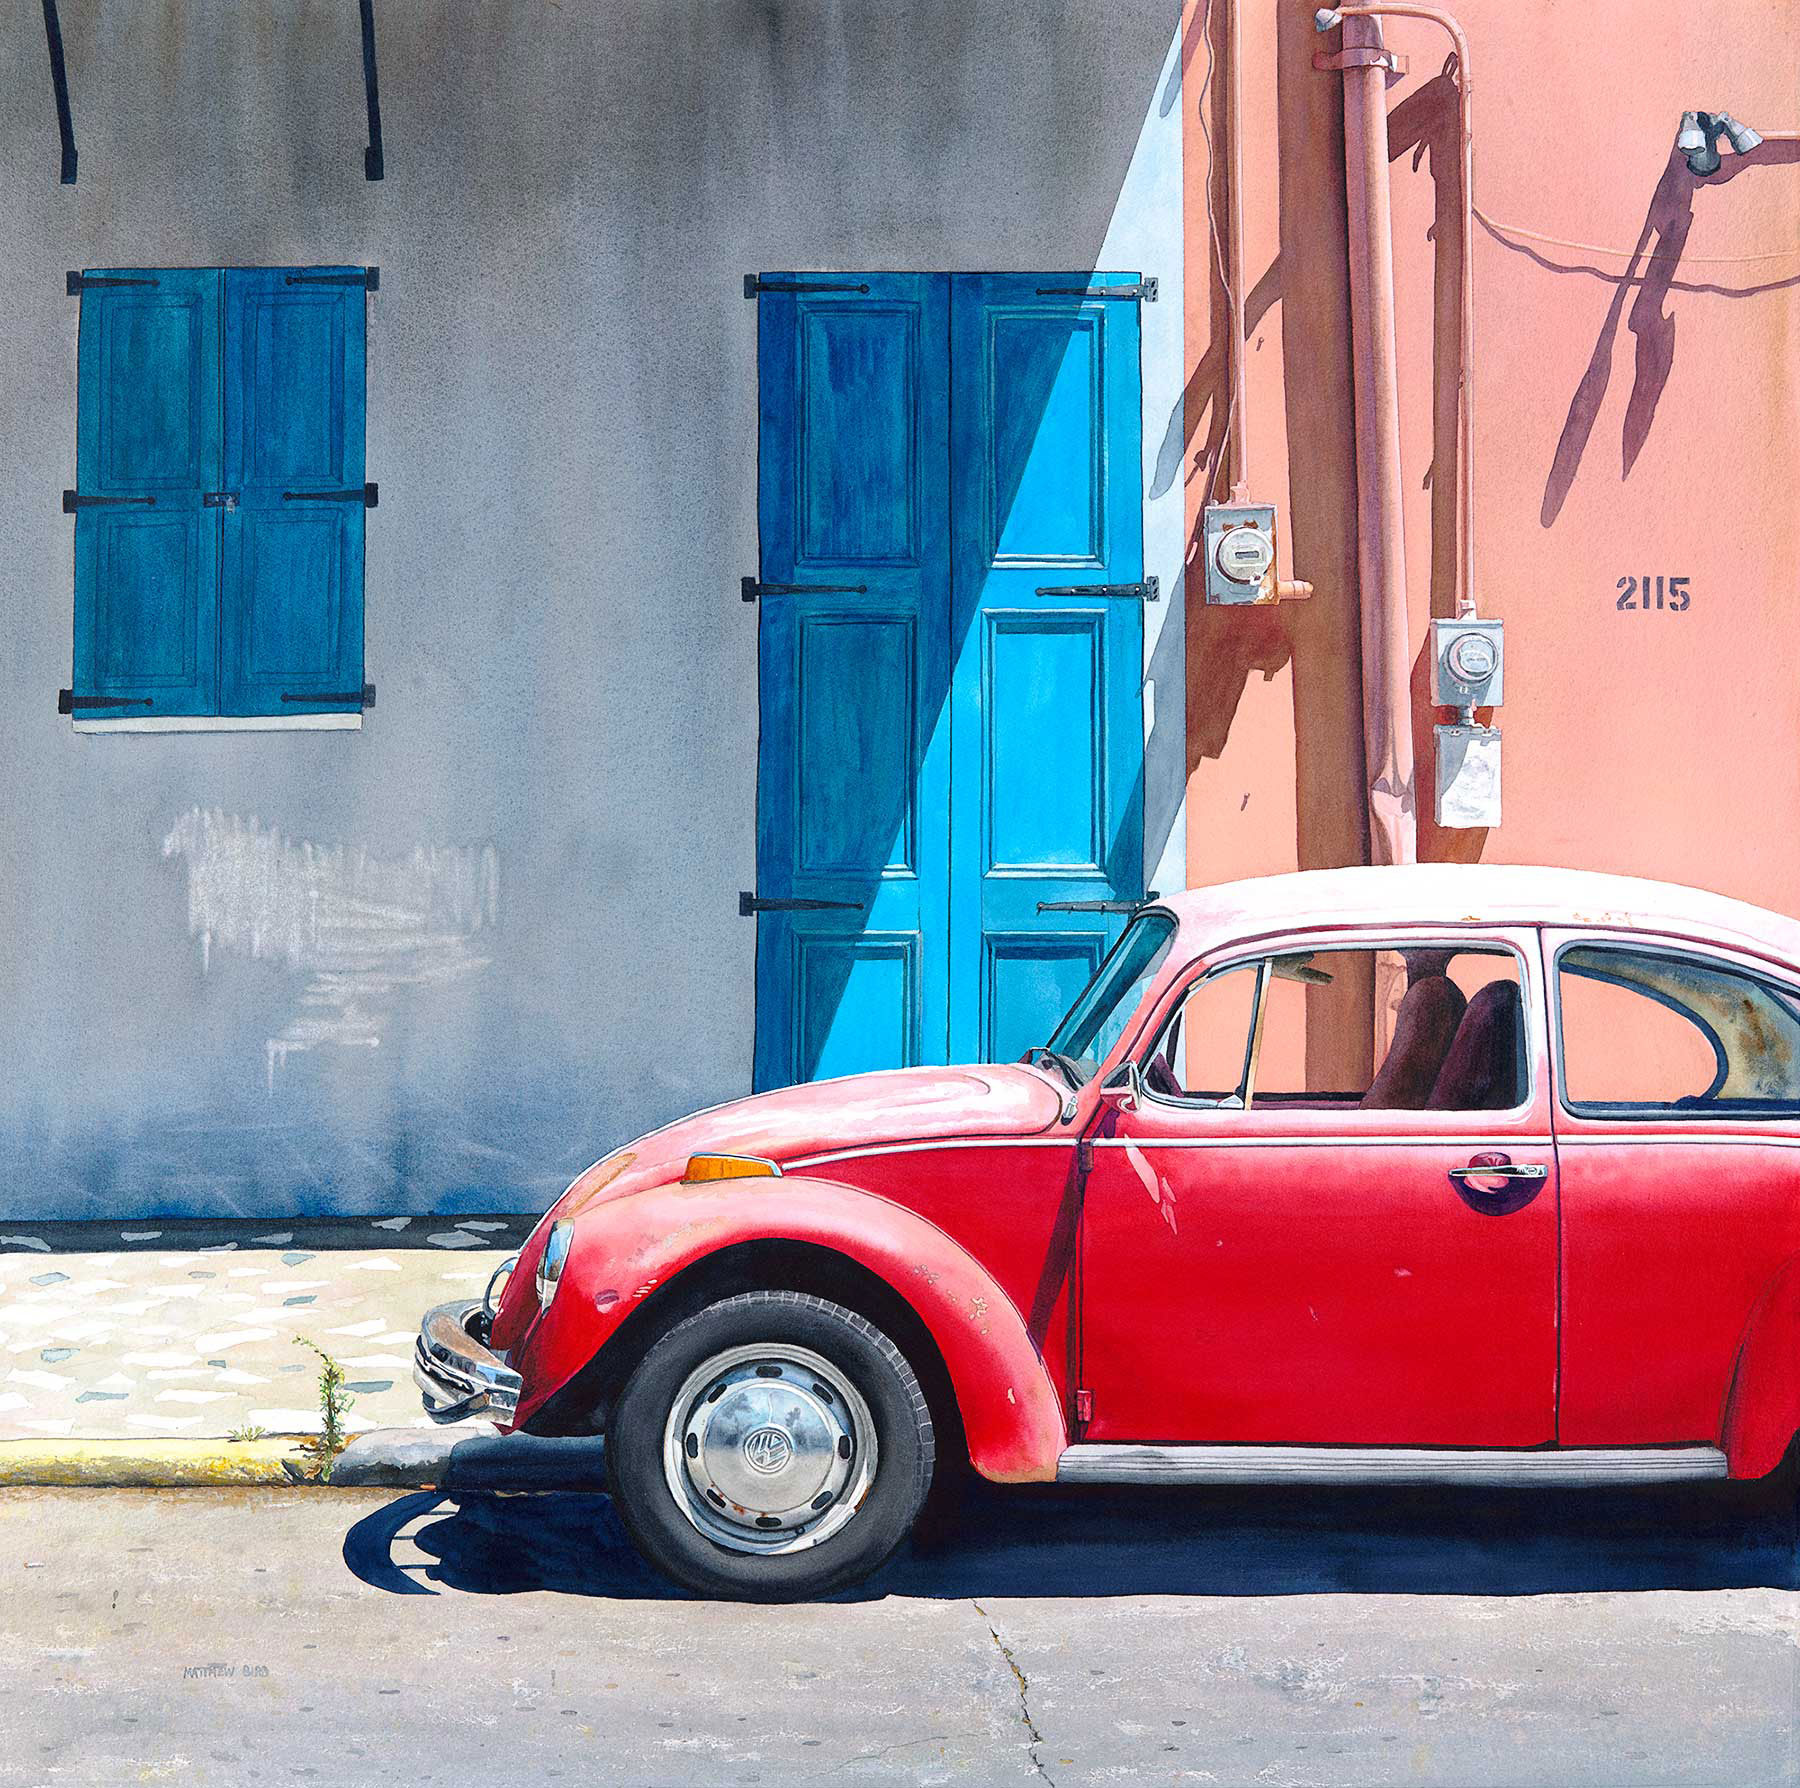 Matthew-Bird_Punch-Buggy-Red.jpg